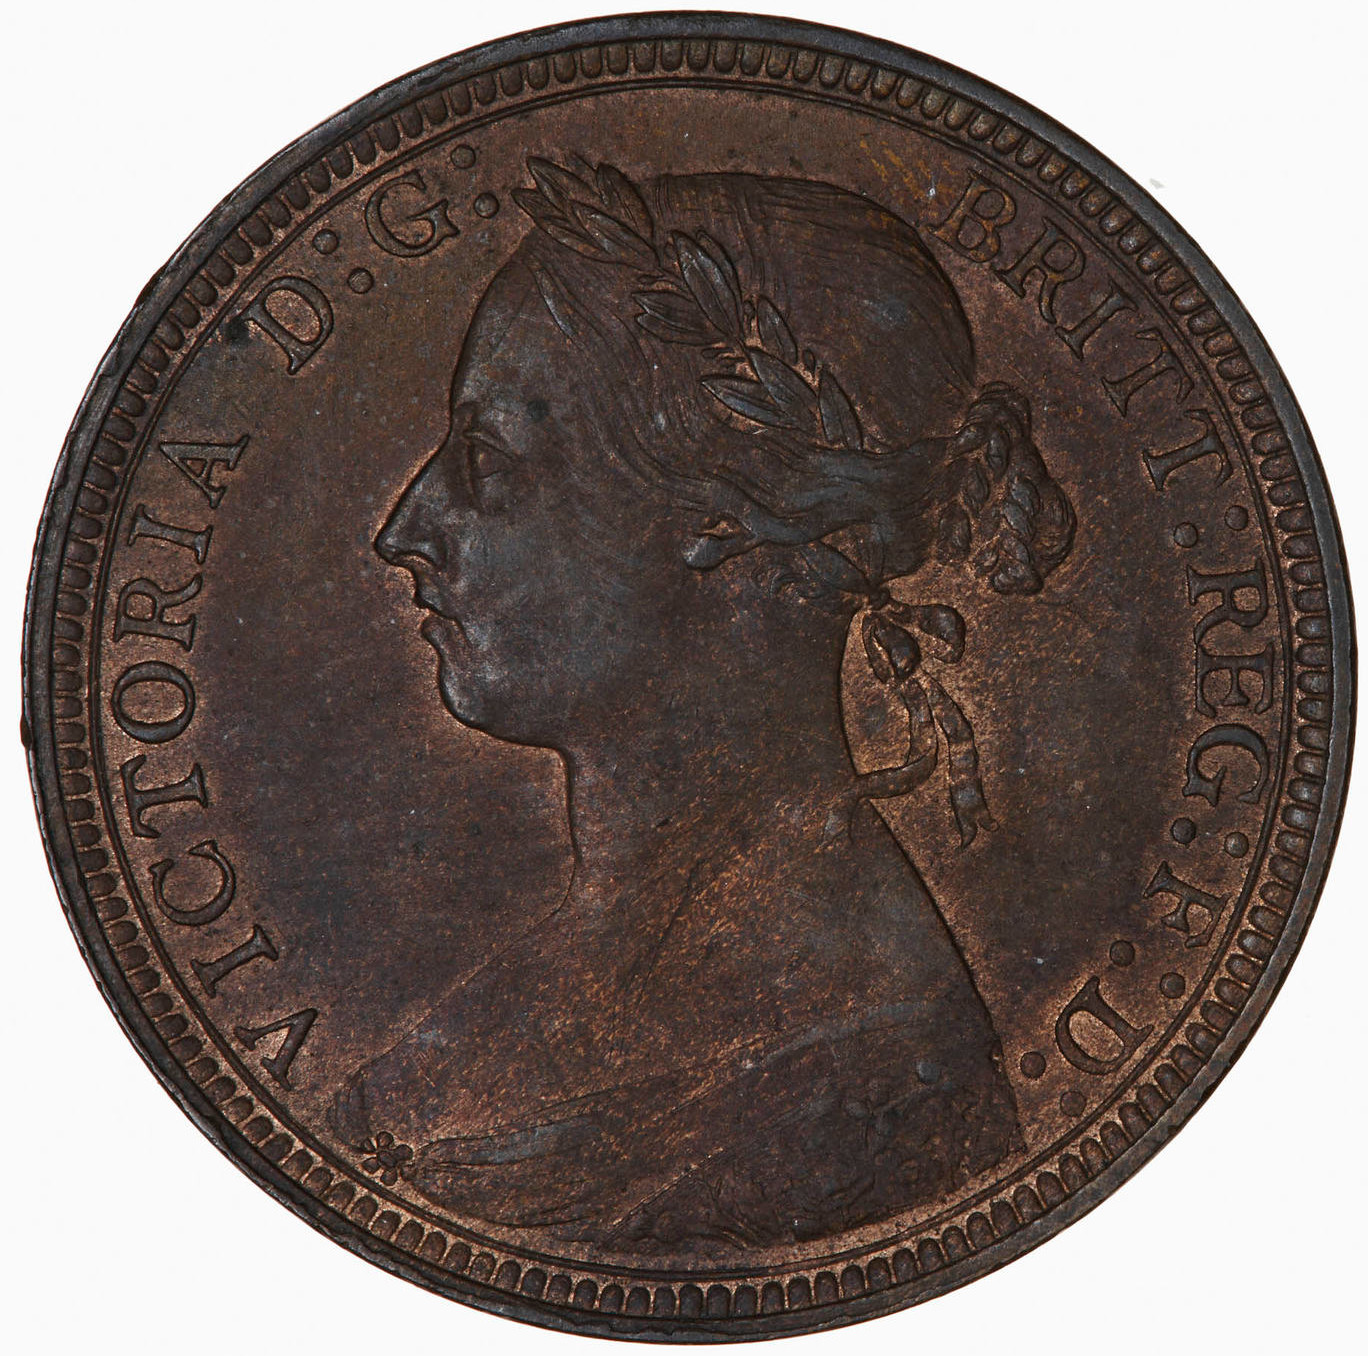 Halfpenny 1889: Photo Coin - Halfpenny, Queen Victoria, Great Britain, 1889